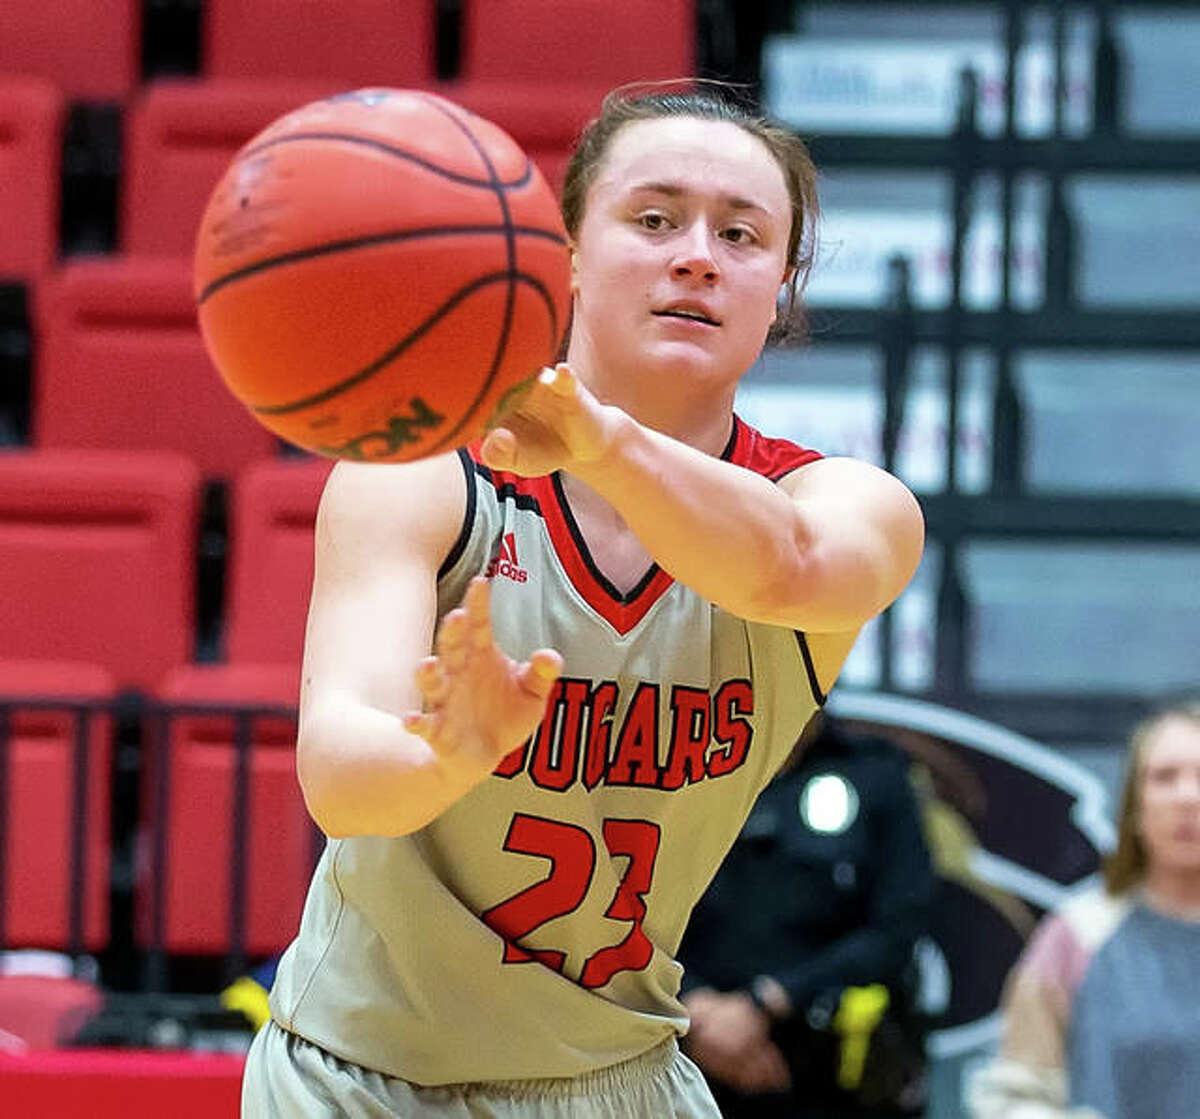 SIUE's Allie Troeckler passes to a teammate during a game last season at SIUE's First Community Arena in Edwardsville. Troeckler led the Cougars in scoring at 10.8 points per game as a junior.